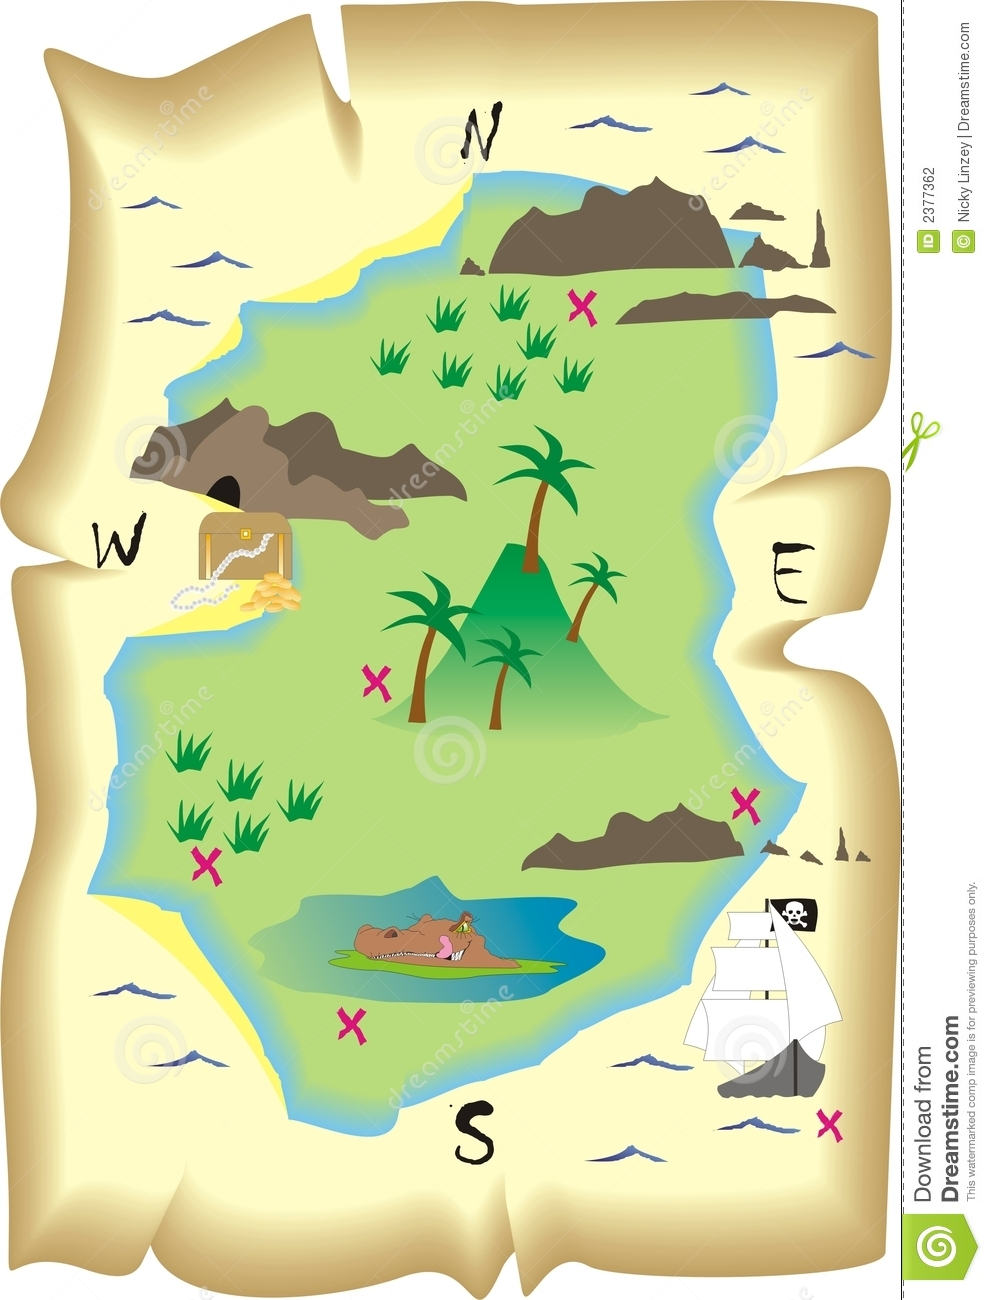 treasure map stock vector illustration of clues  find 2377362 treasure map background vector free download treasure island vector map